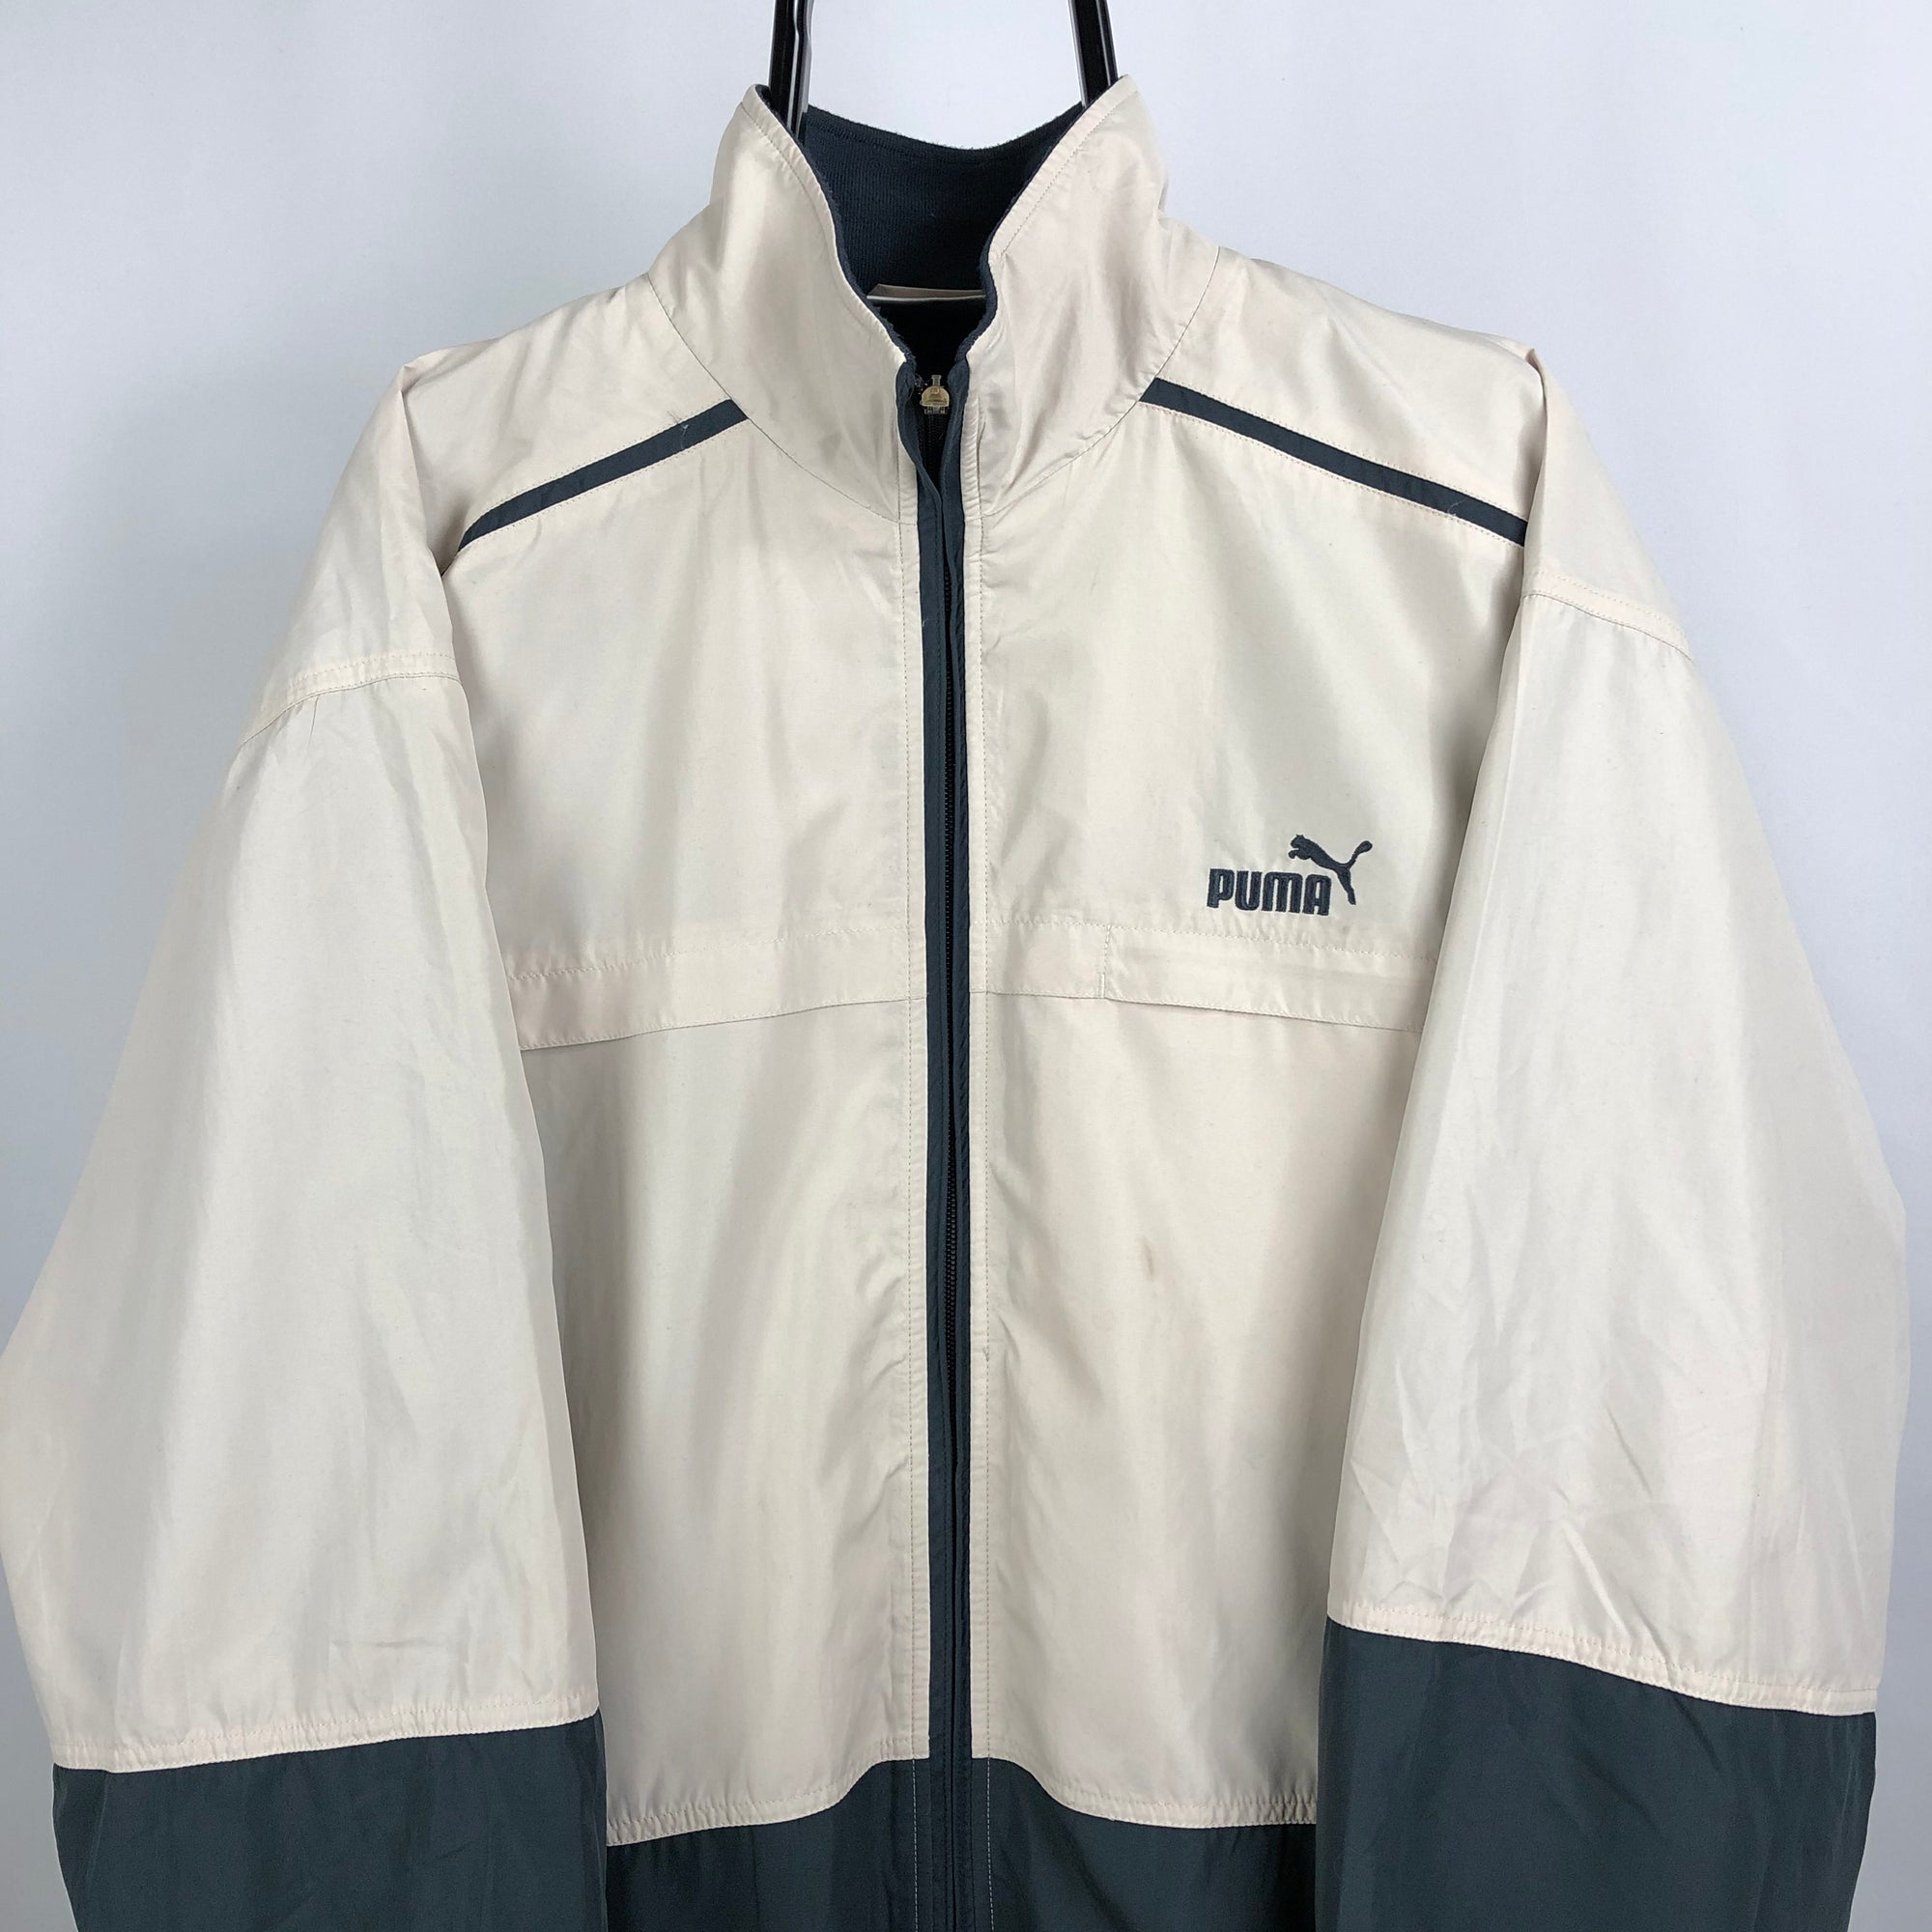 Vintage Puma Track Jacket in Beige + Dark Grey - Men's Large/Women's XL